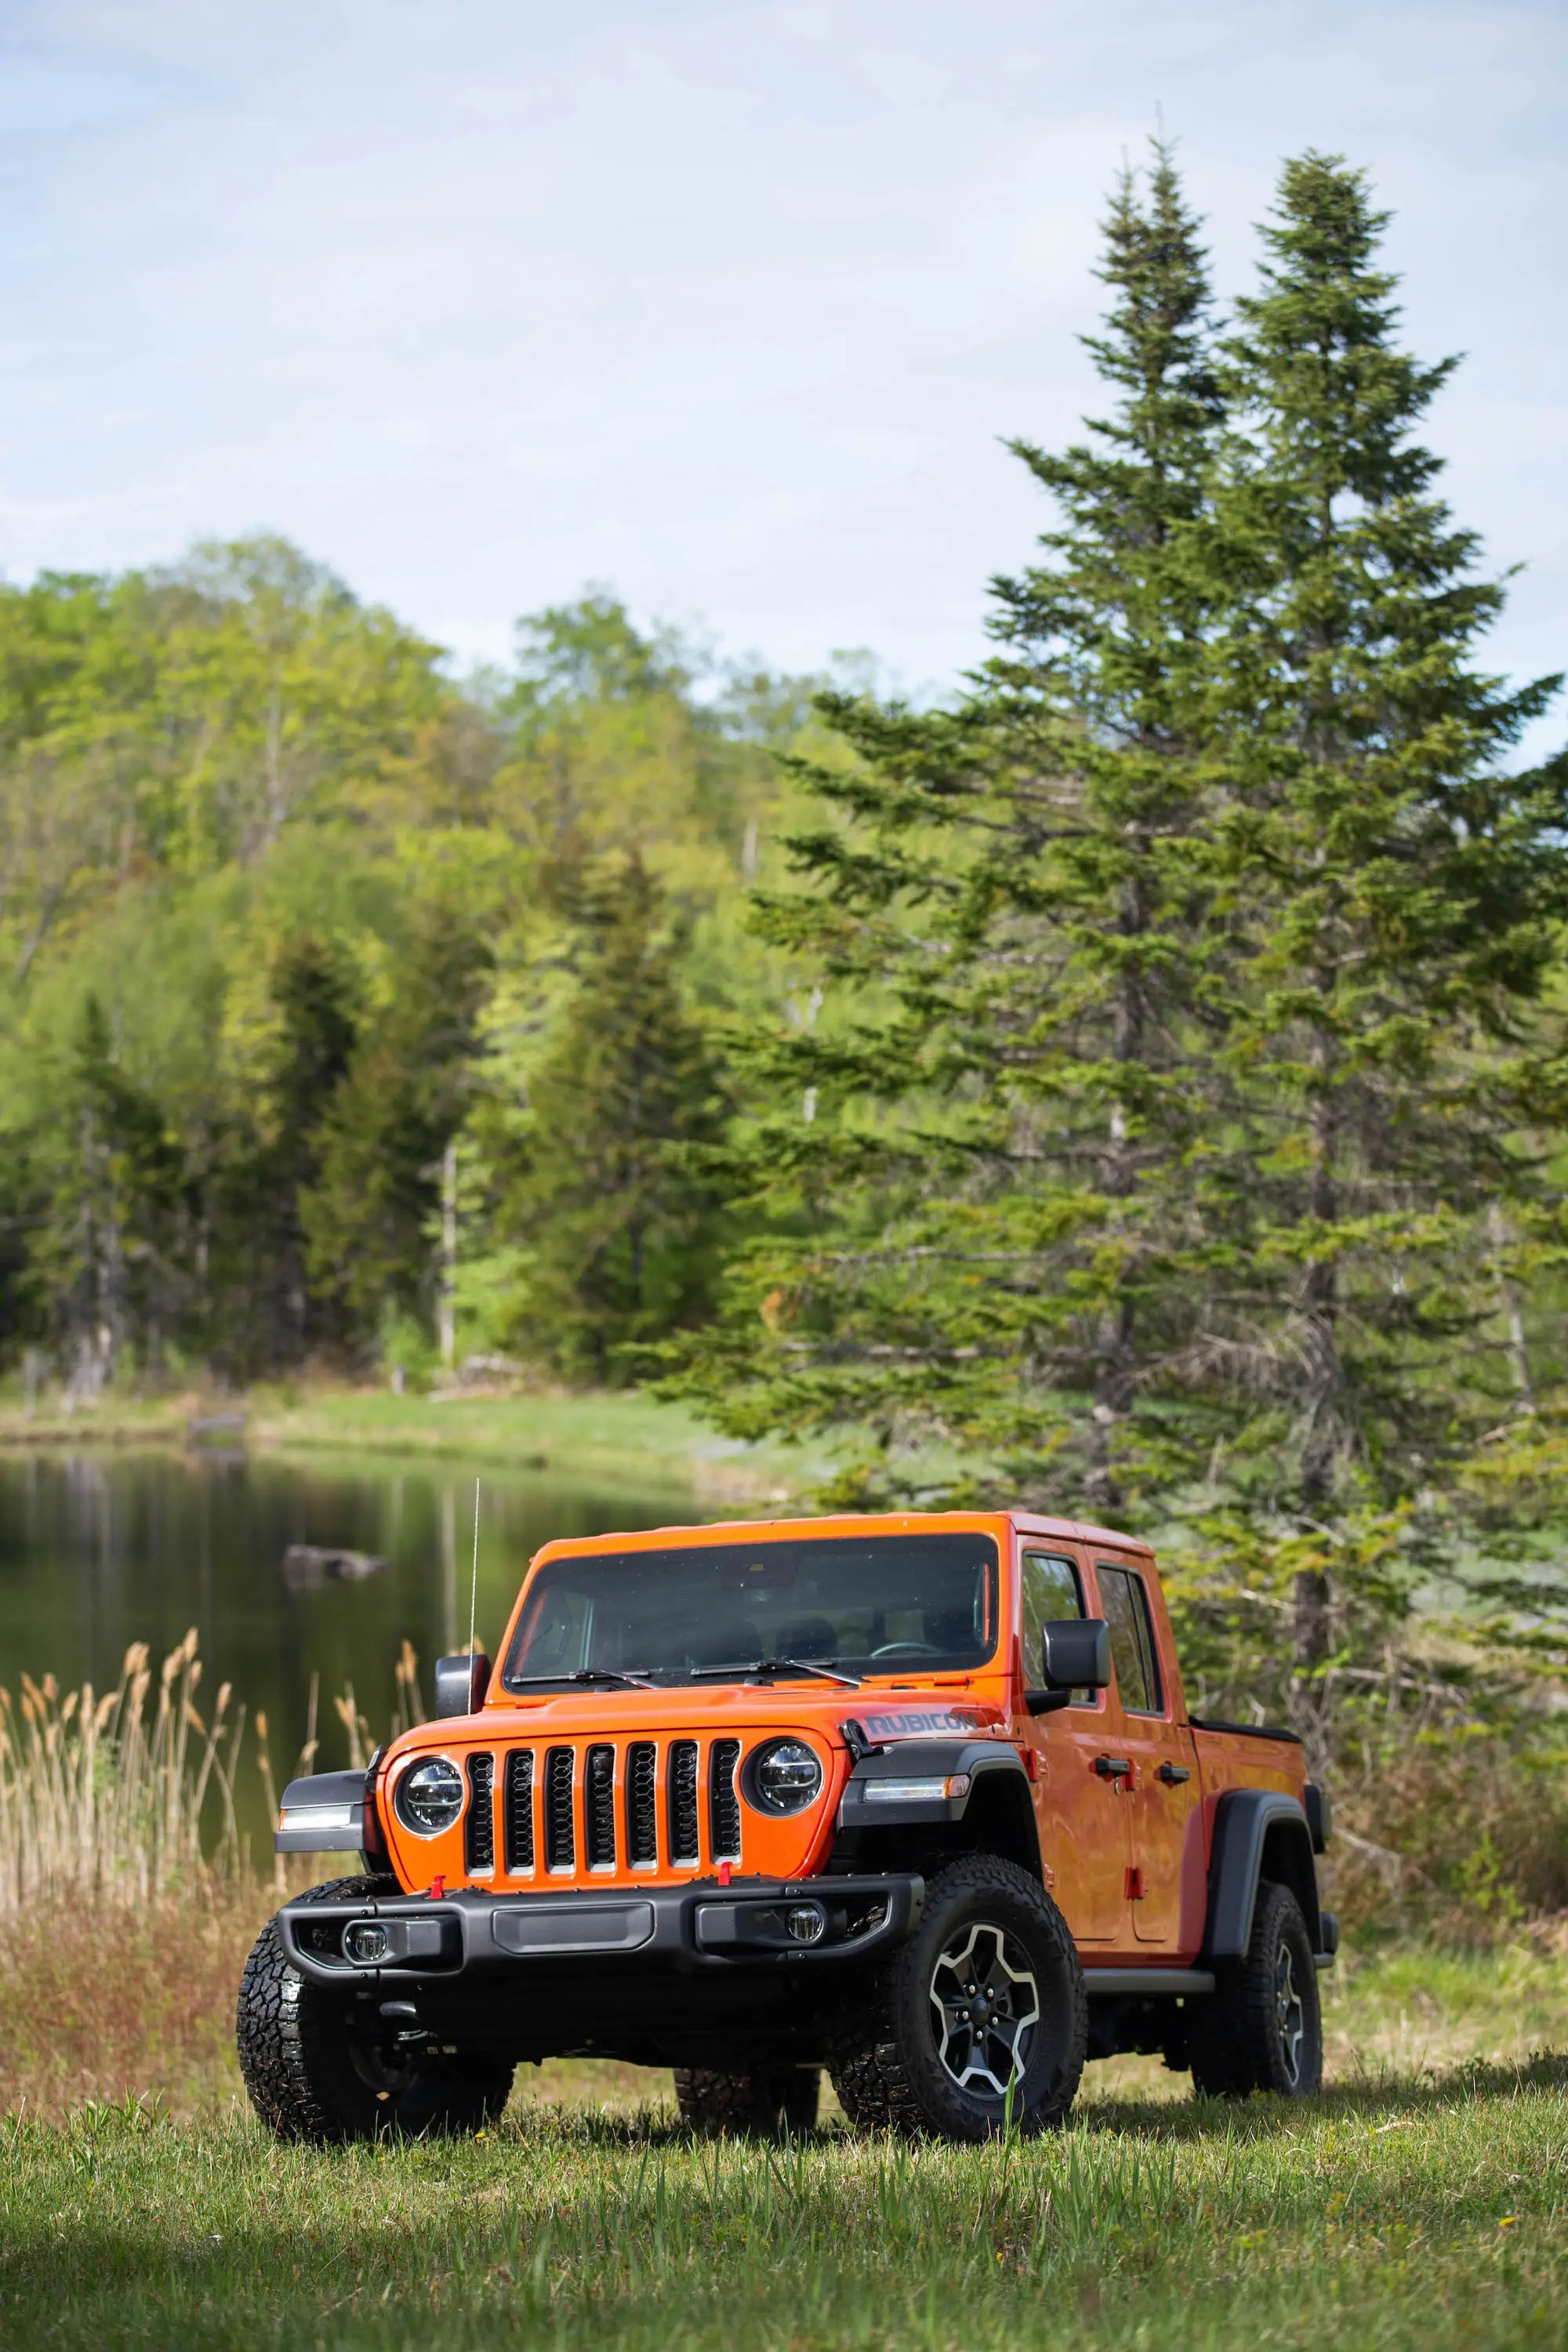 Jeep With Bed : Gladiator, Review:, Off-road, Beast, Dislikes, Highways